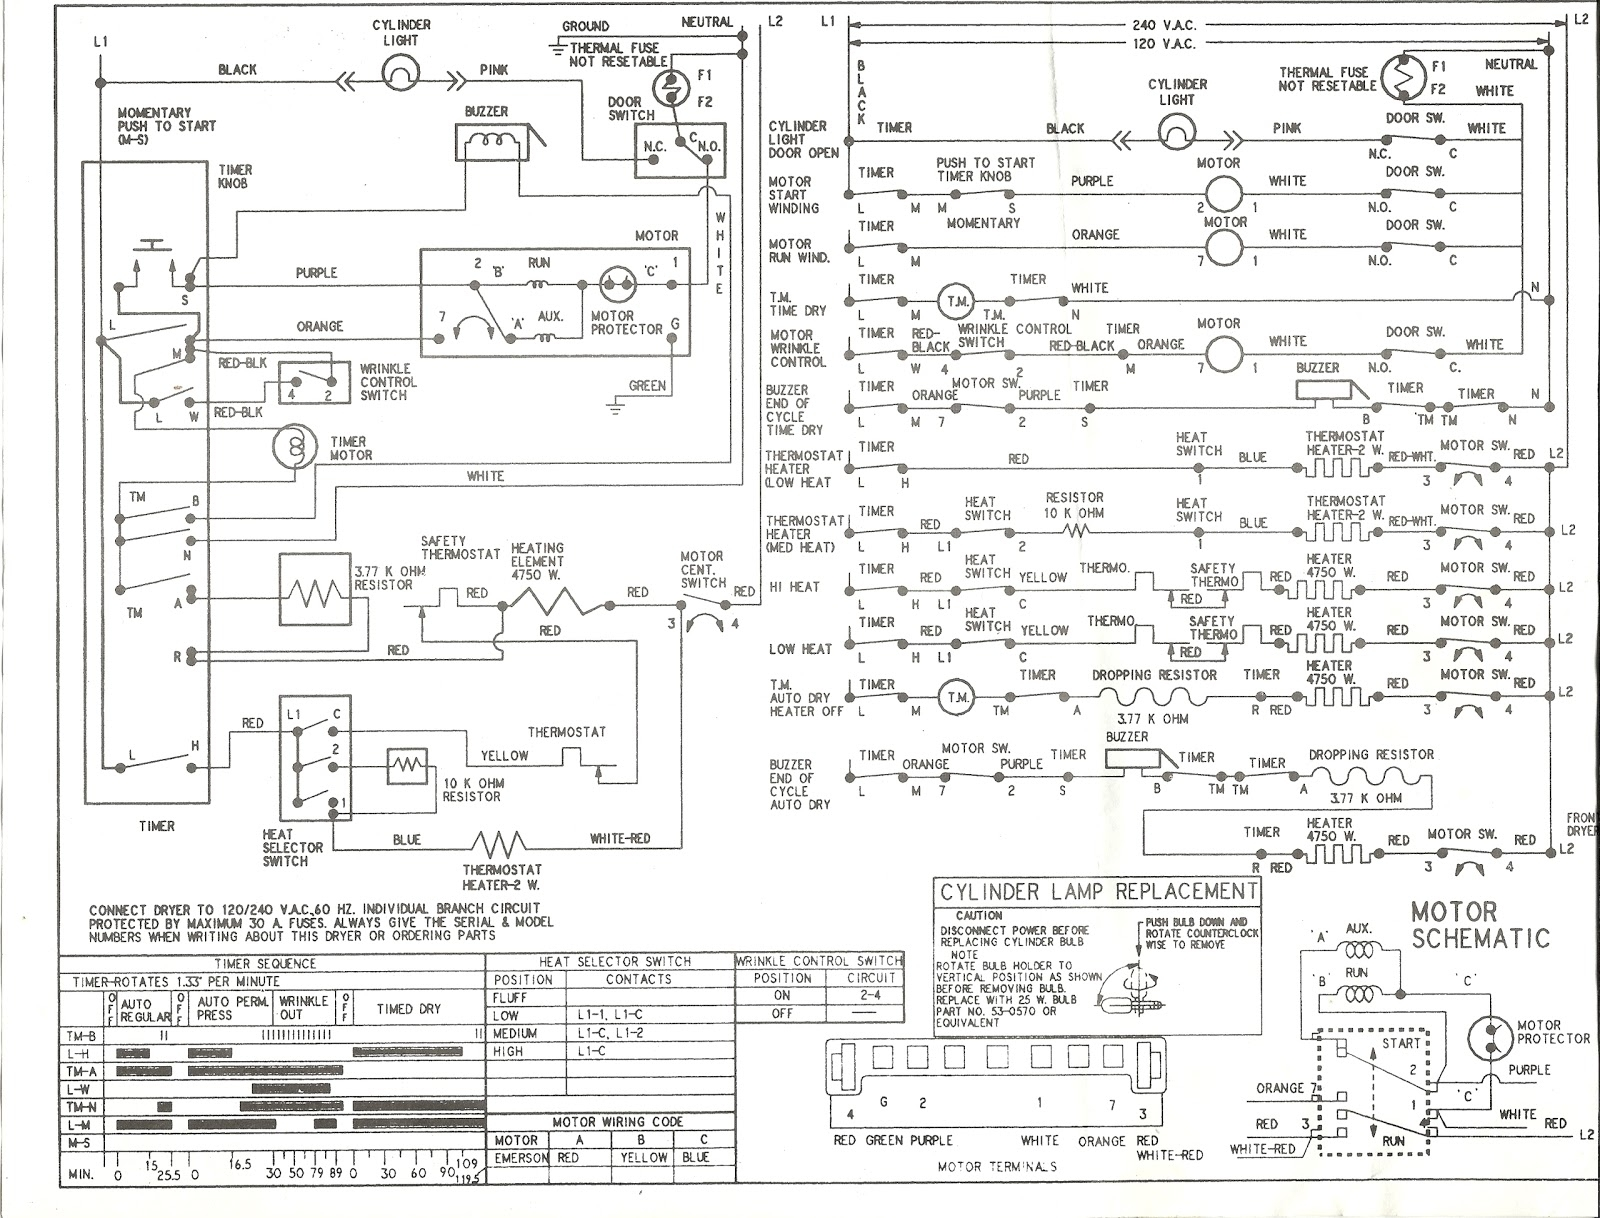 kenwood radio kdc 138 wiring diagram with 80 Series Wiring Diagram on Kenwood Car Stereo Wiring Diagrams On Kdc 138 together with Kenwood Kdc Mp345u Wiring Harness besides Kenwood Wiring Diagram as well Wiring Diagram Kenwood Kdc 138 furthermore 2002 Ford Expedition Stereo Wiring Diagram.